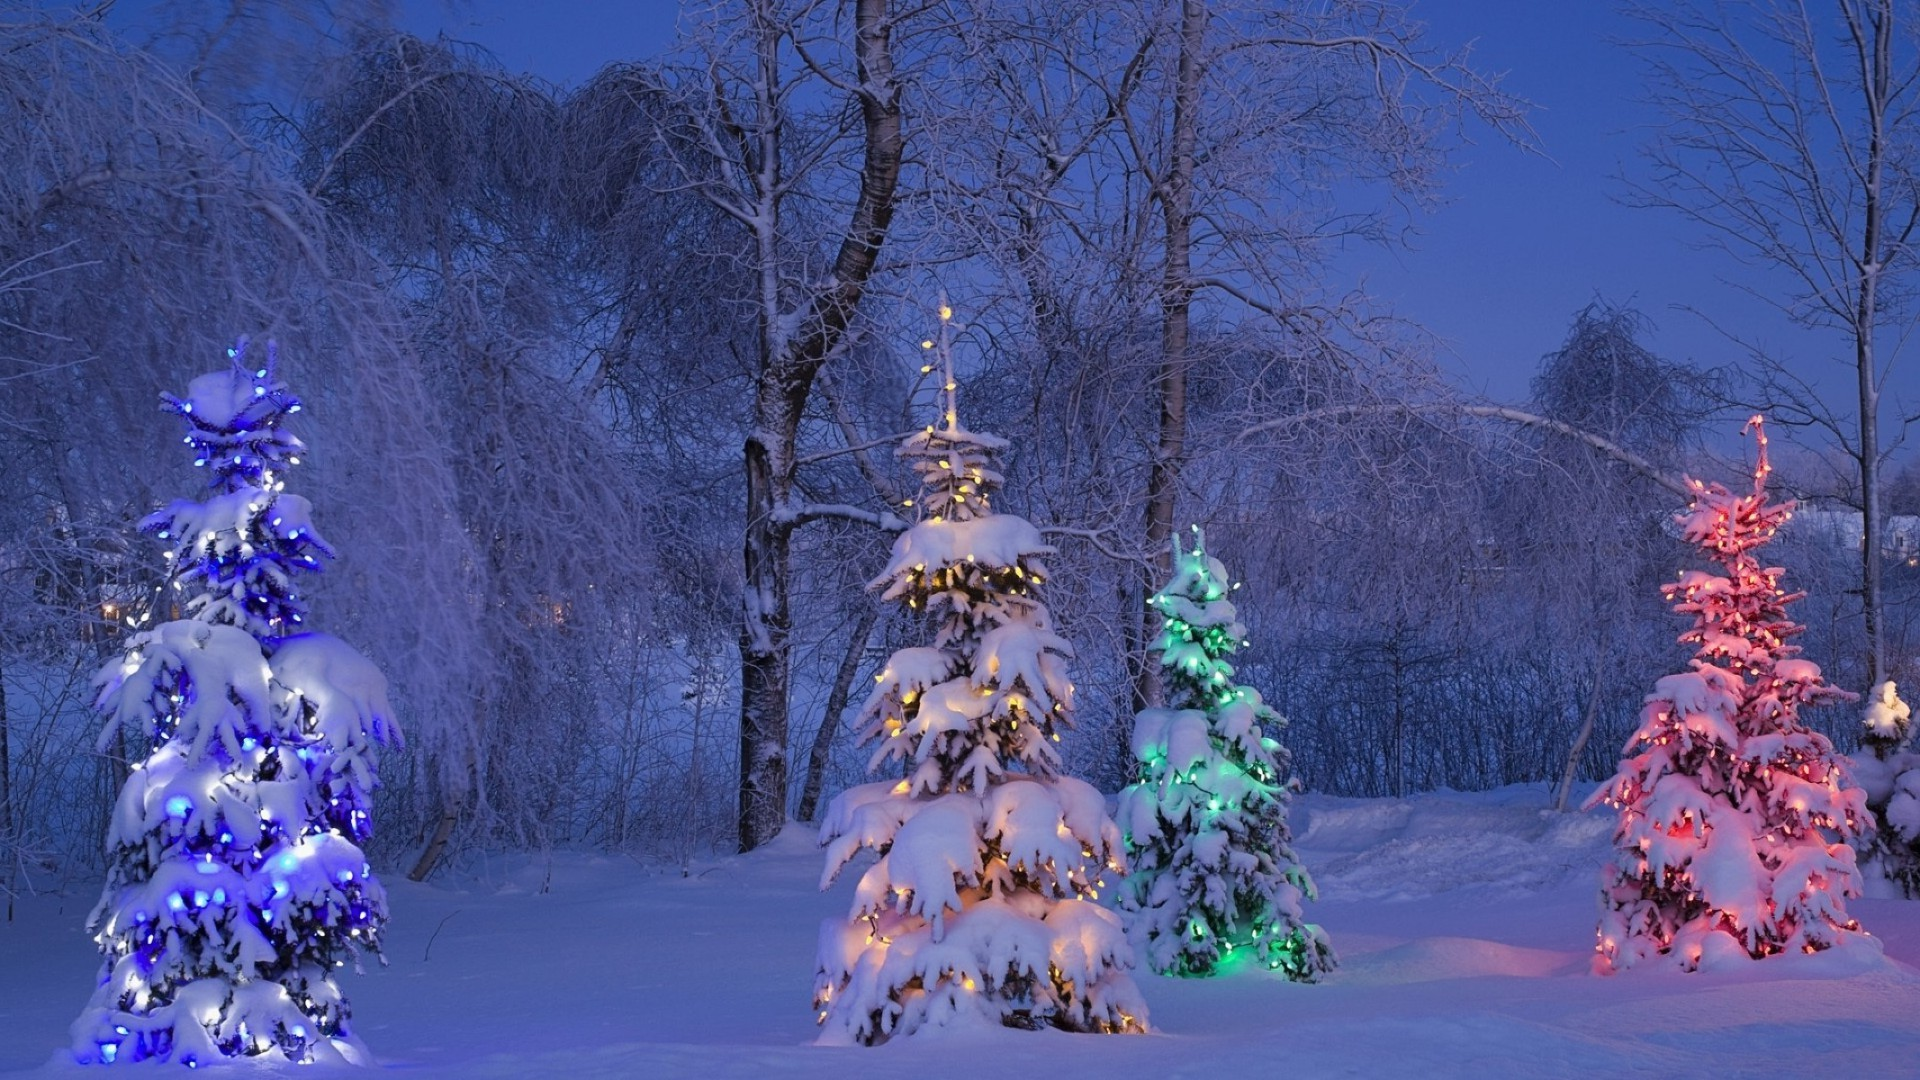 new year winter snow tree cold wood landscape frost outdoors fall season christmas nature